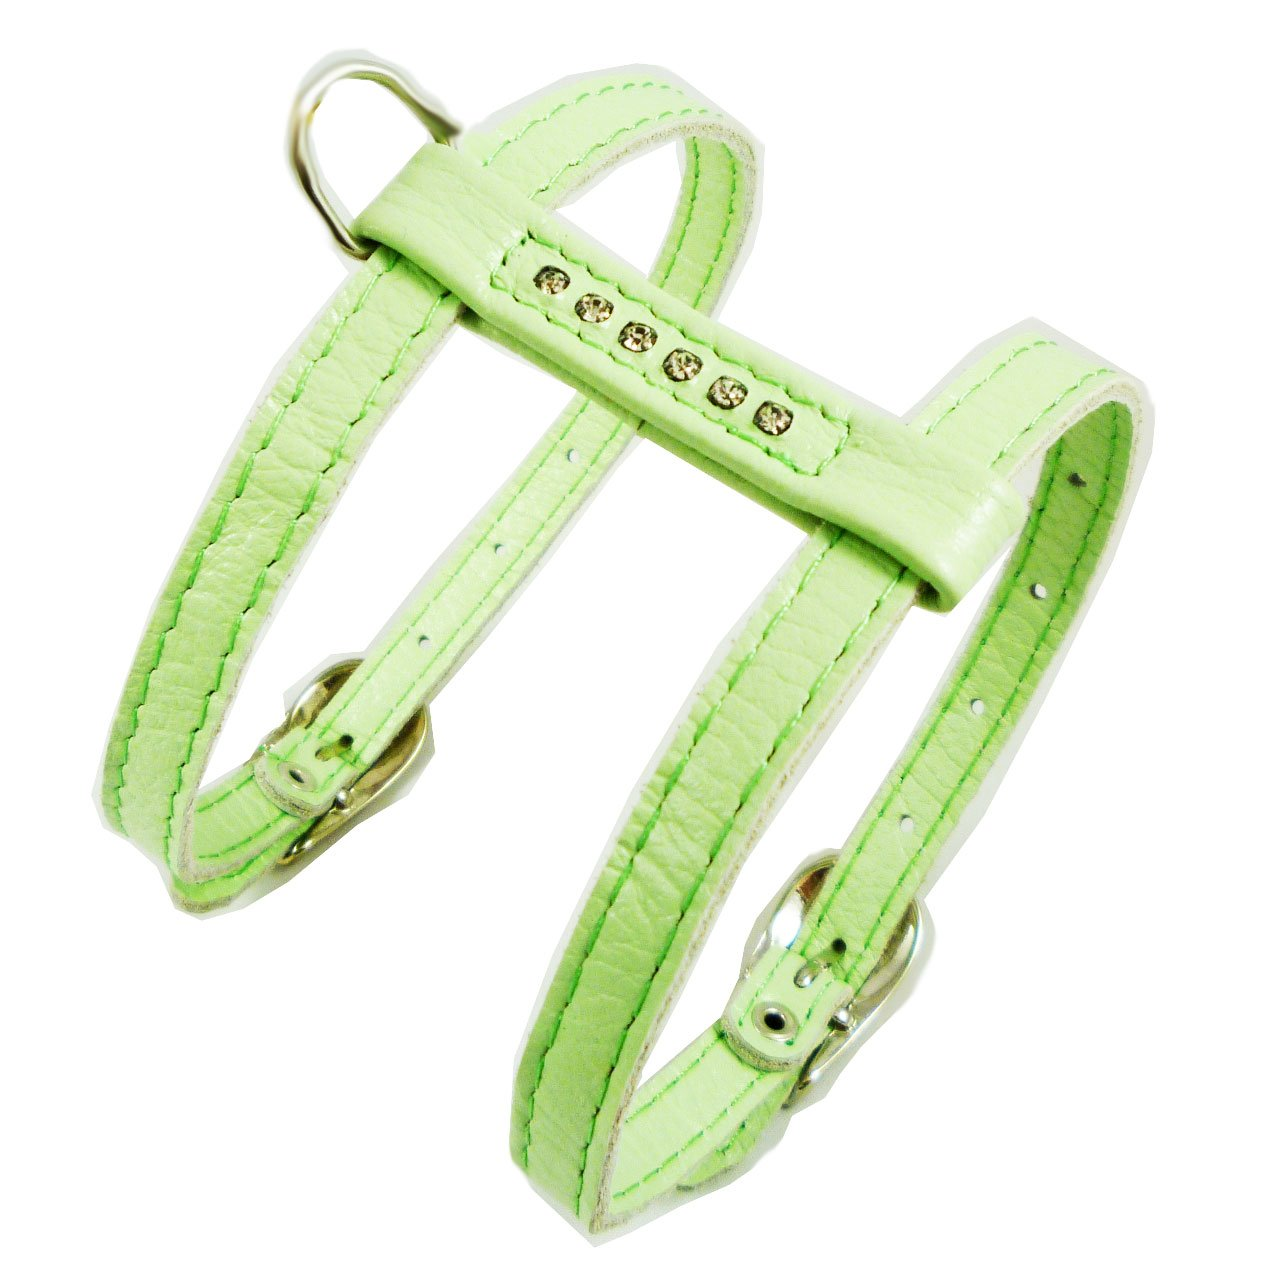 Genuine Leather Dog Harness for Toy Breeds X-small. 10 -13  Chest Circumference Rhinestones (Green)